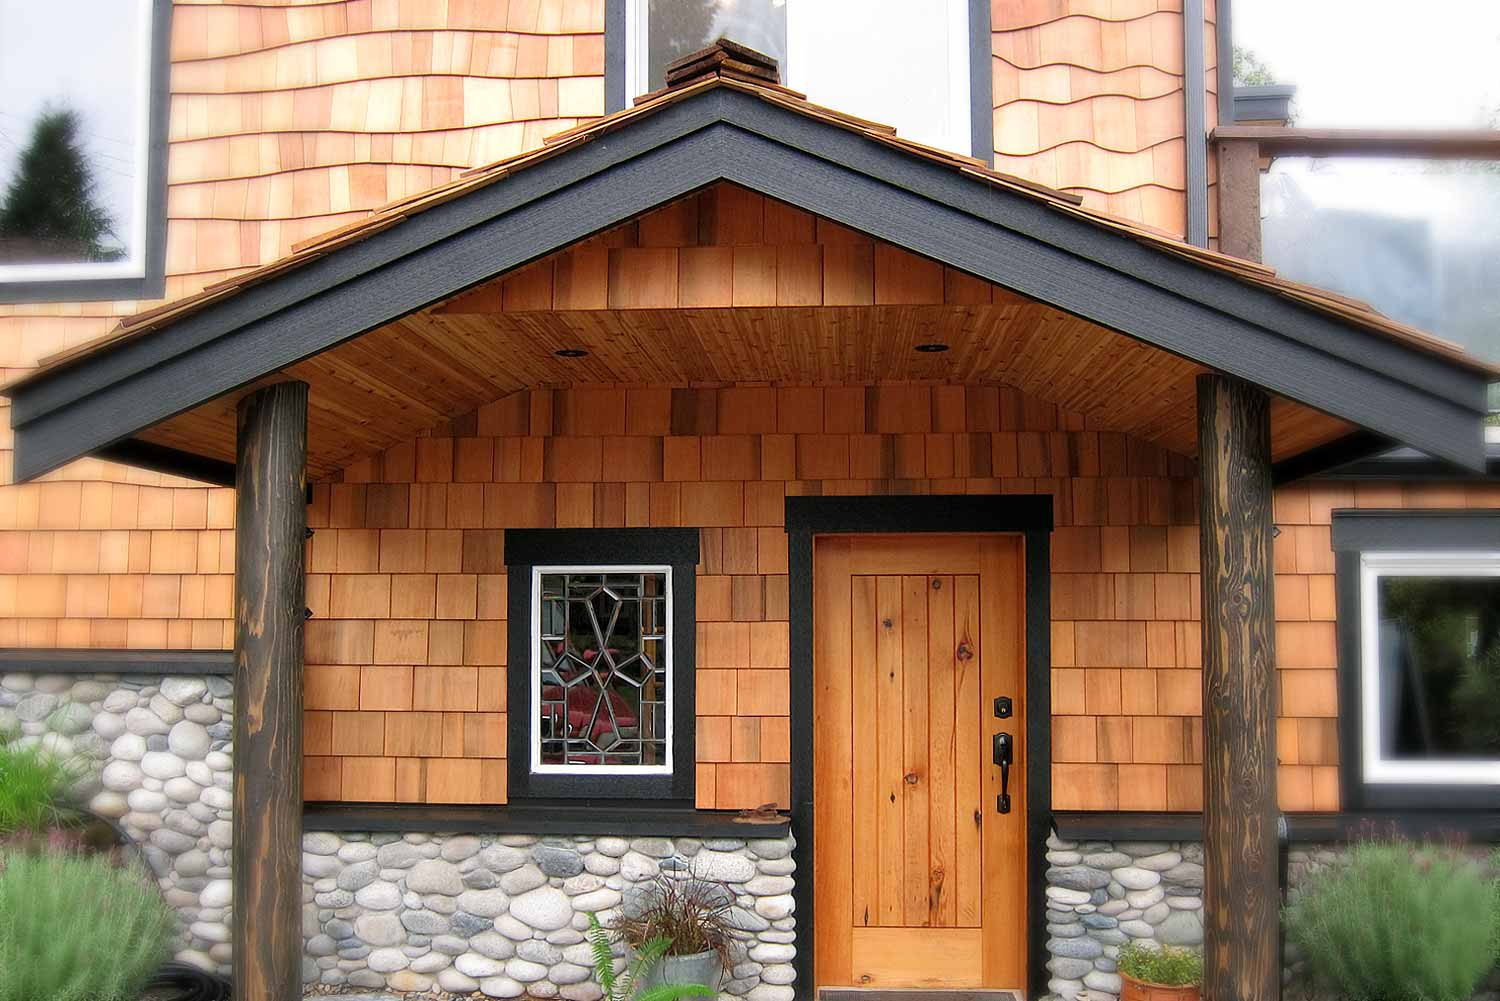 Cedar Shake Siding Cost Plus Pros Cons 2020 Siding Cost Guide Exploring House Siding Options